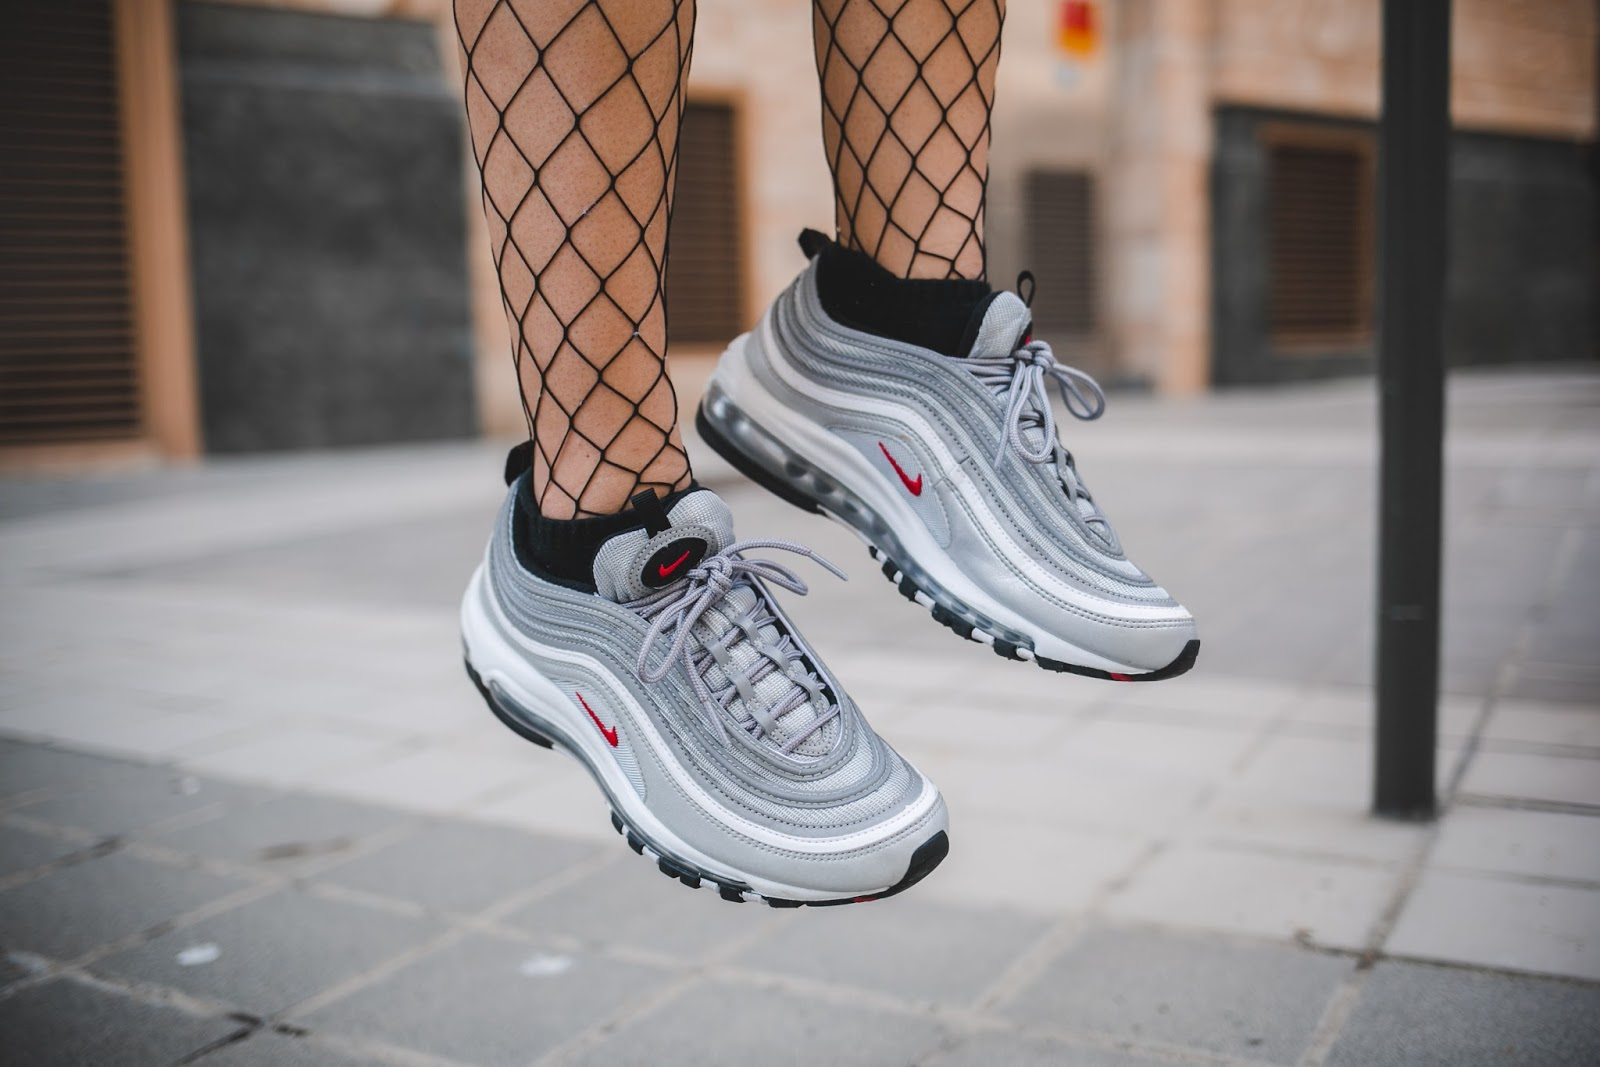 Nike Air Max 97 Silver Bullet for Air Max Day